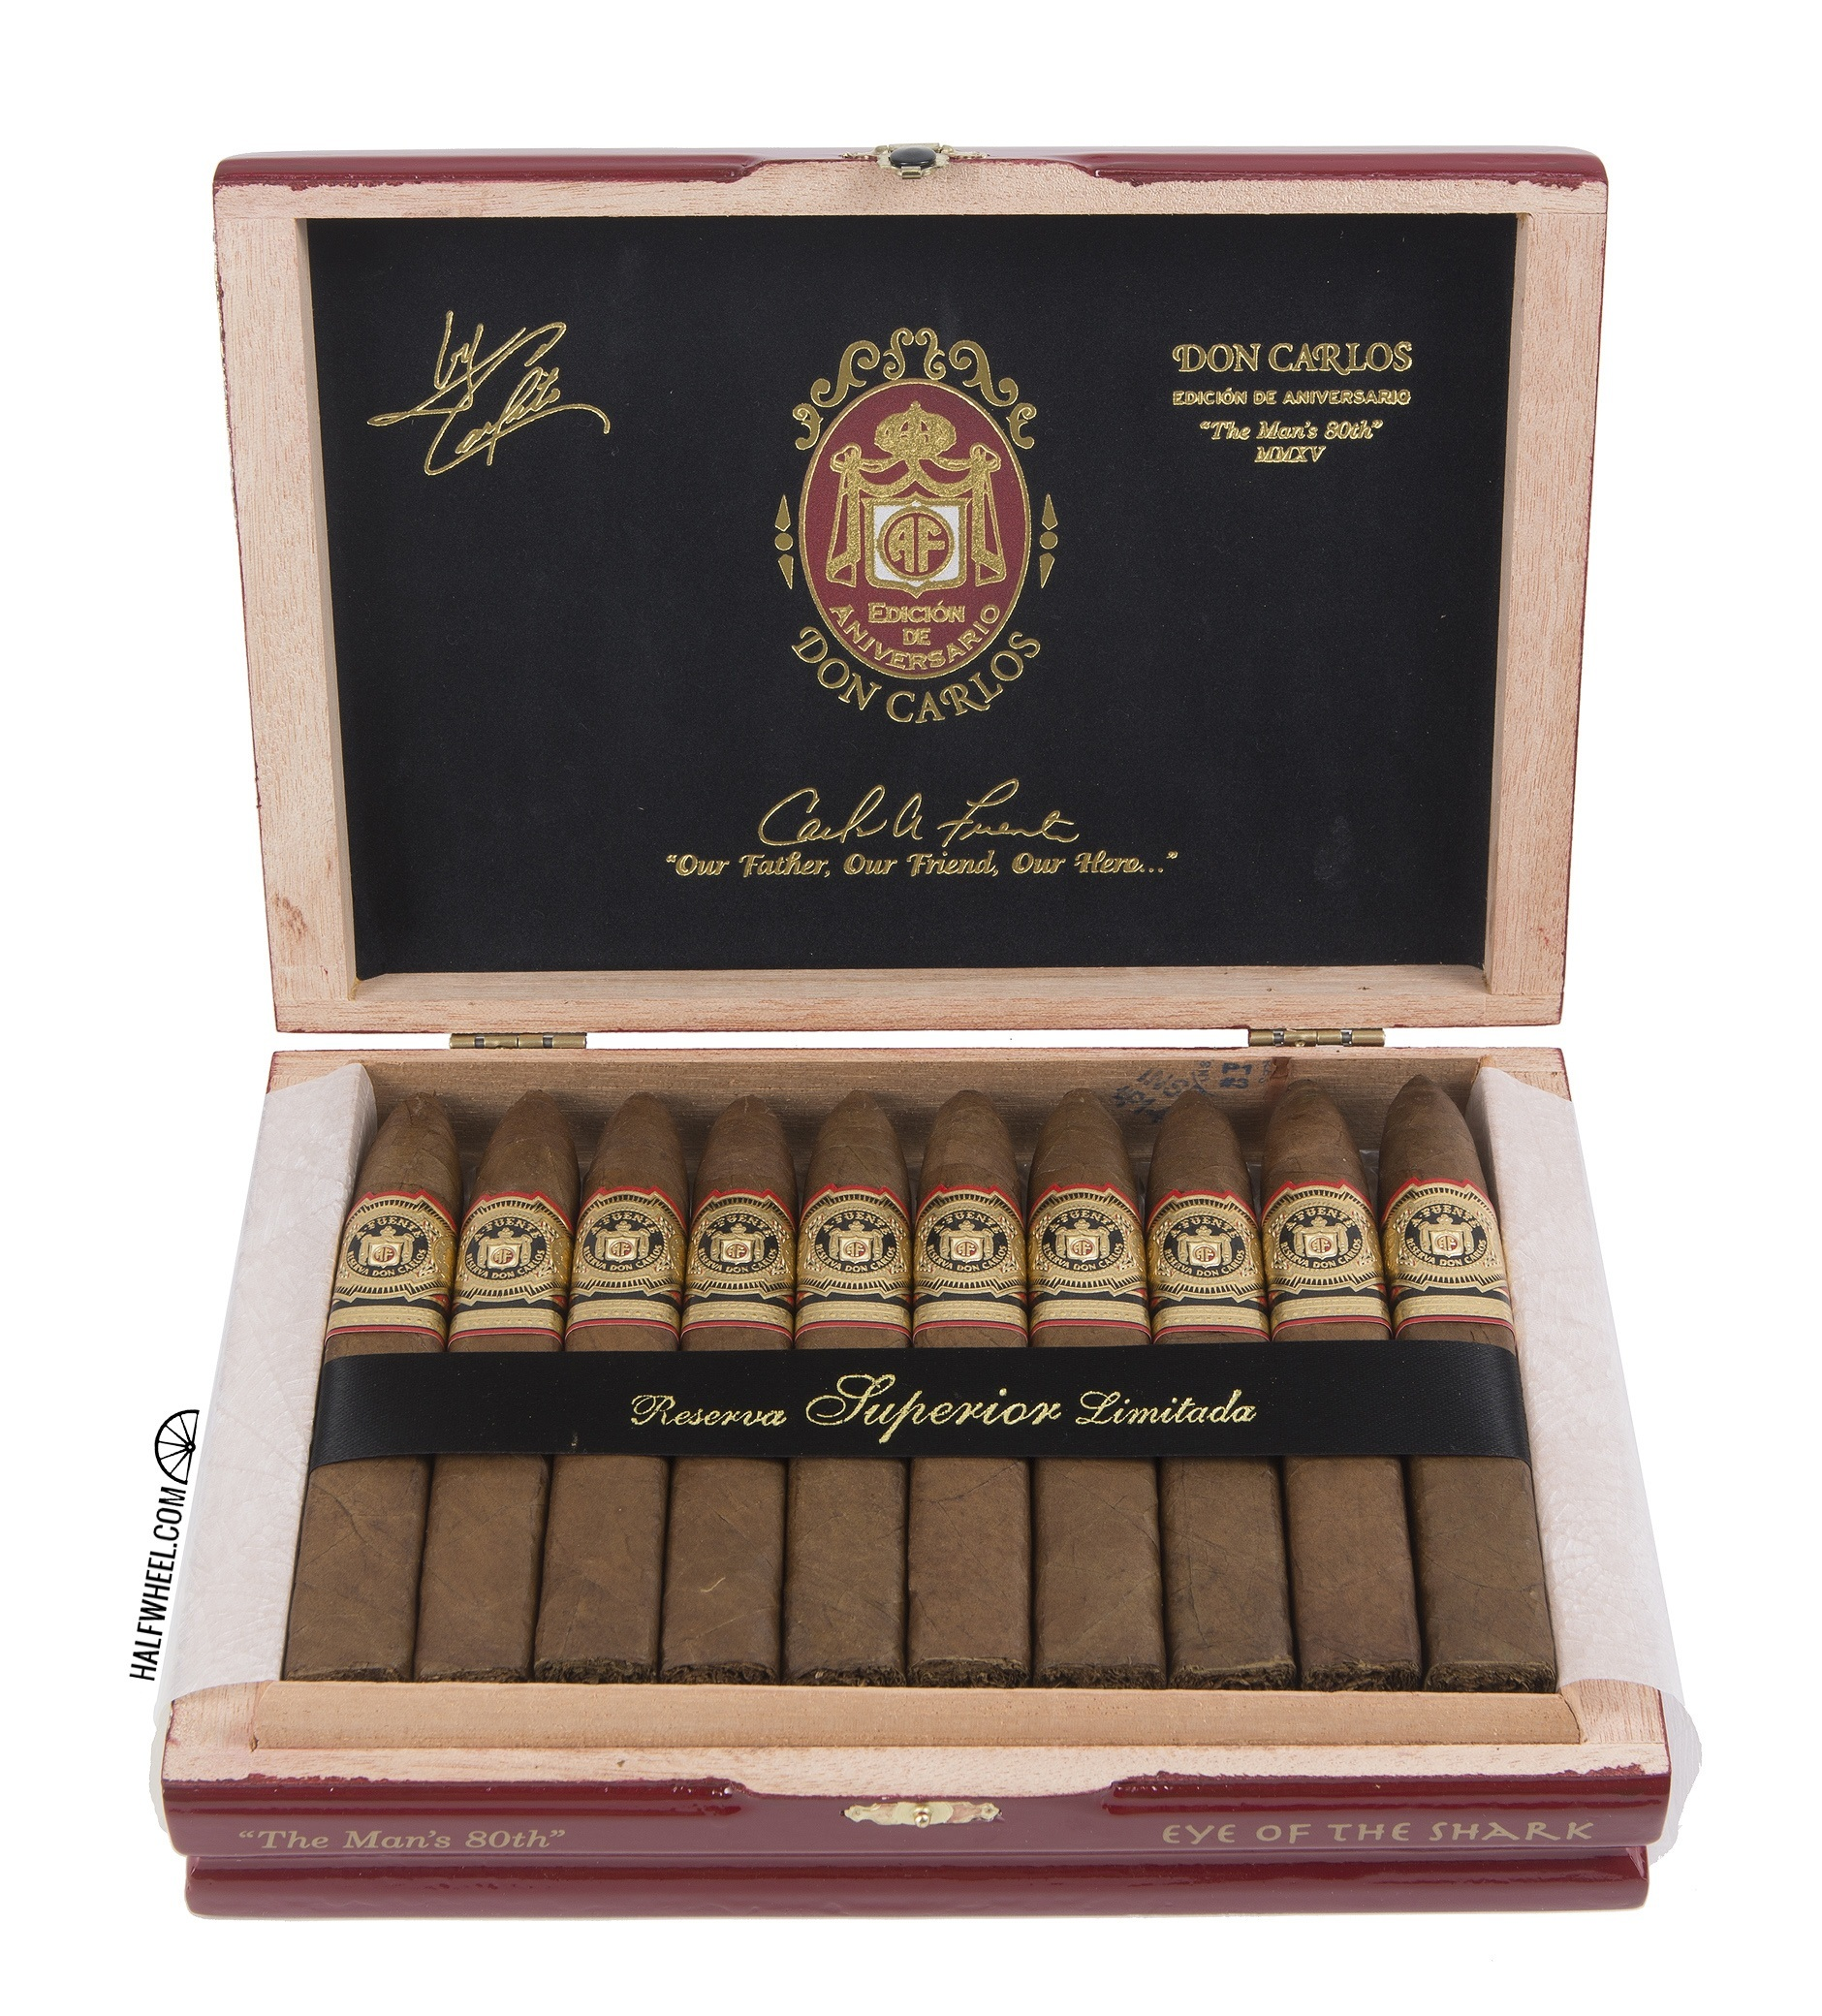 Arturo Fuente Don Carlos Eye of the Shark Box 2